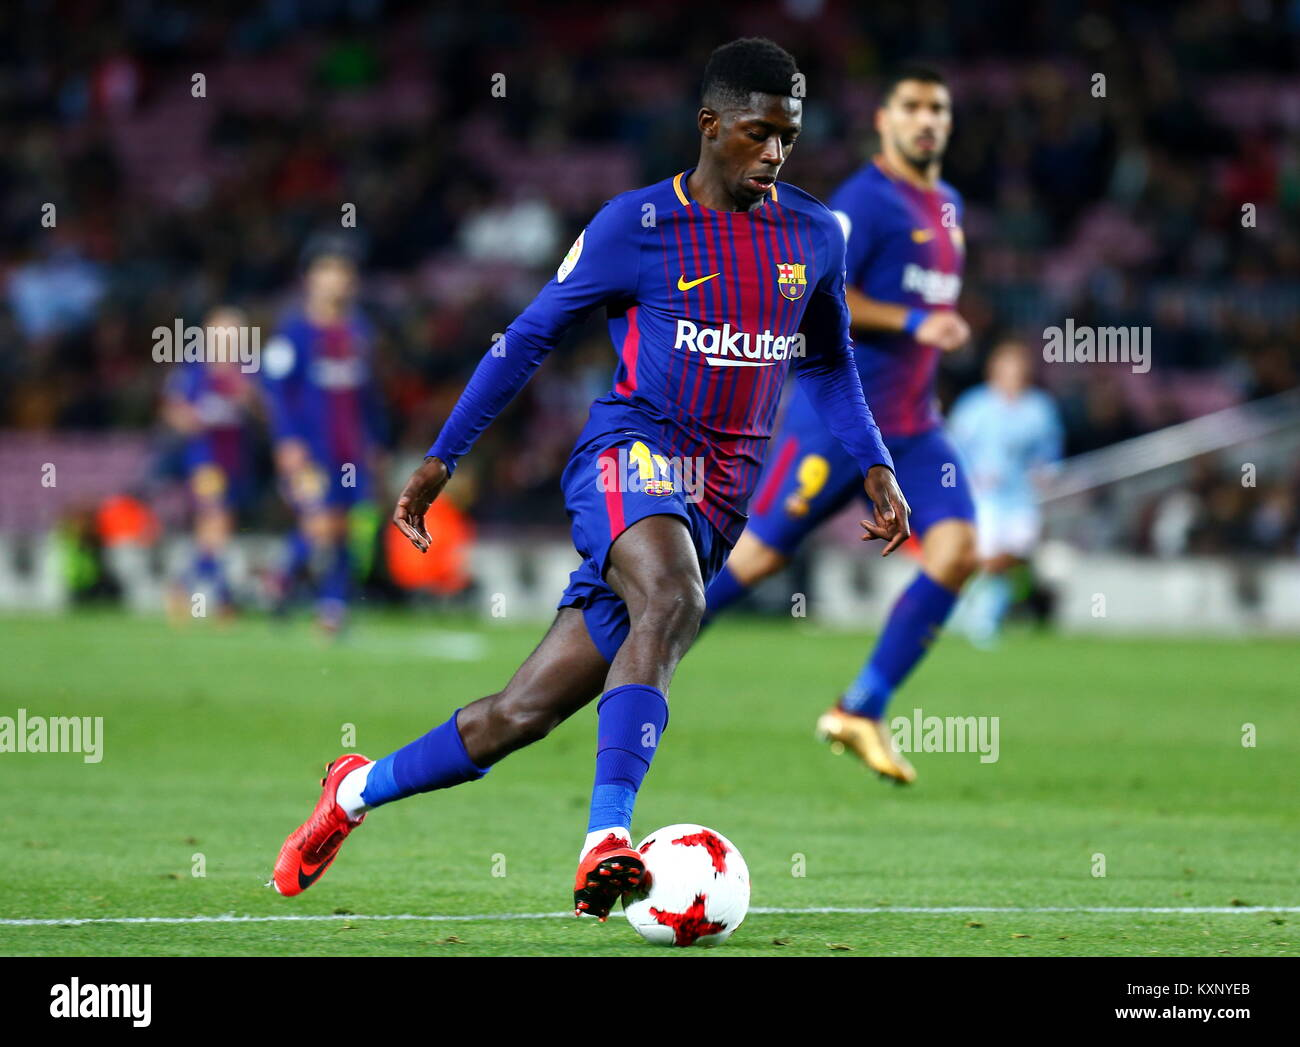 Barcelona, Spain. 11th Jan, 2018. Dembele,11th January 2018, Camp Nou, Barcelona, Spain; Copa del Rey football, - Stock Image